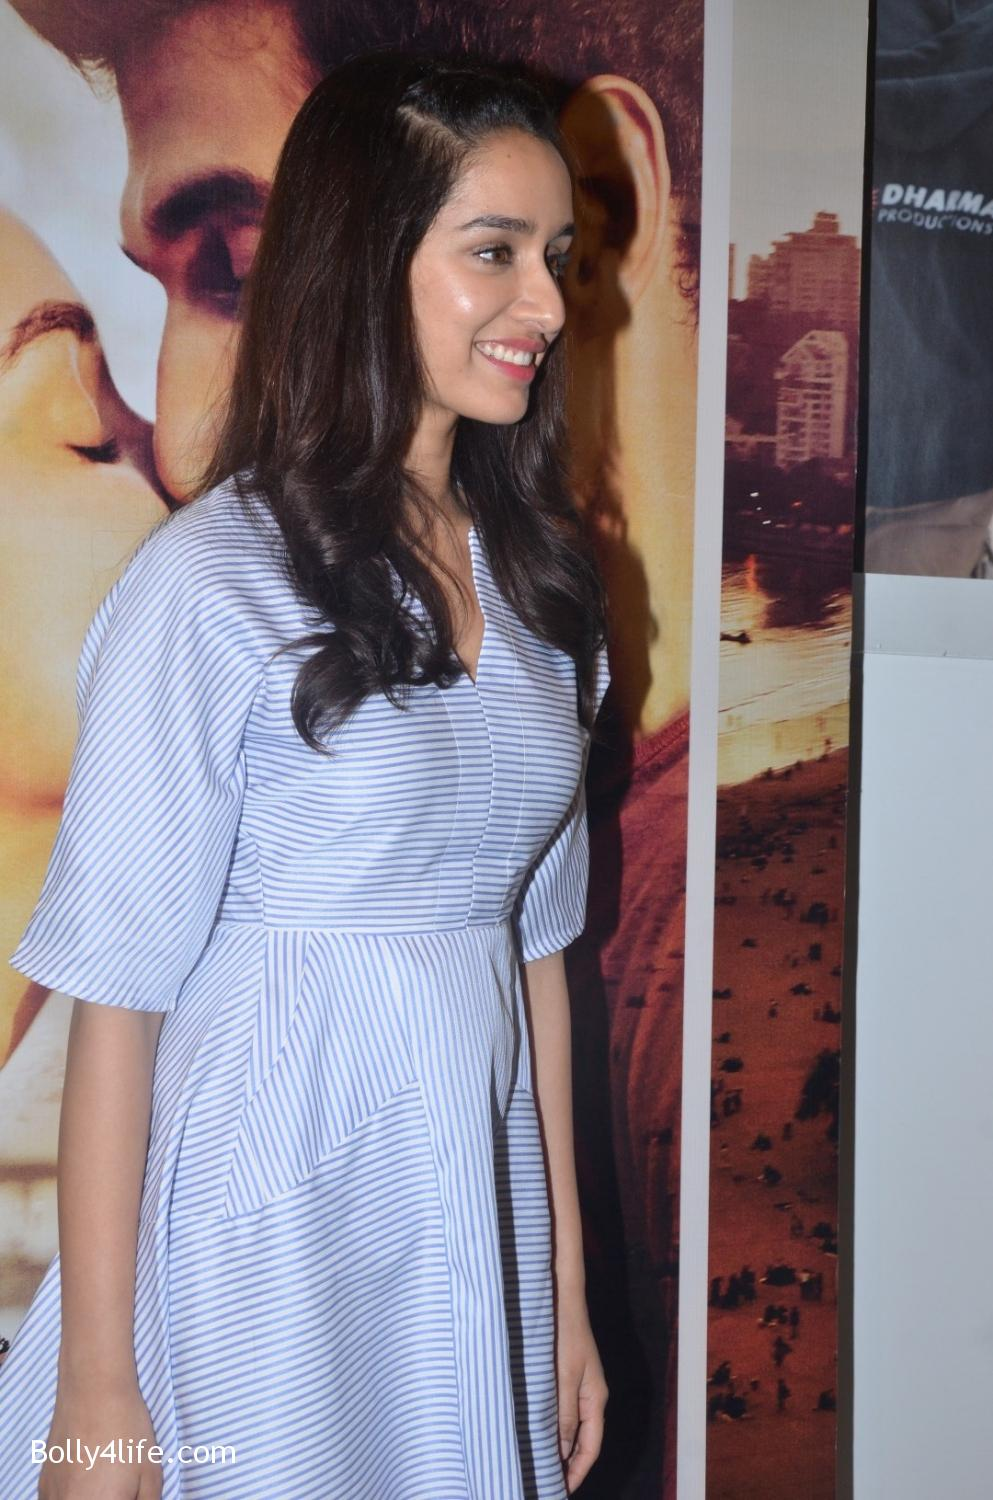 Aditya-Roy-Kapur-and-Shraddha-Kapoor-during-the-media-interaction-for-the-film-Ok-Jaanu-2.jpg